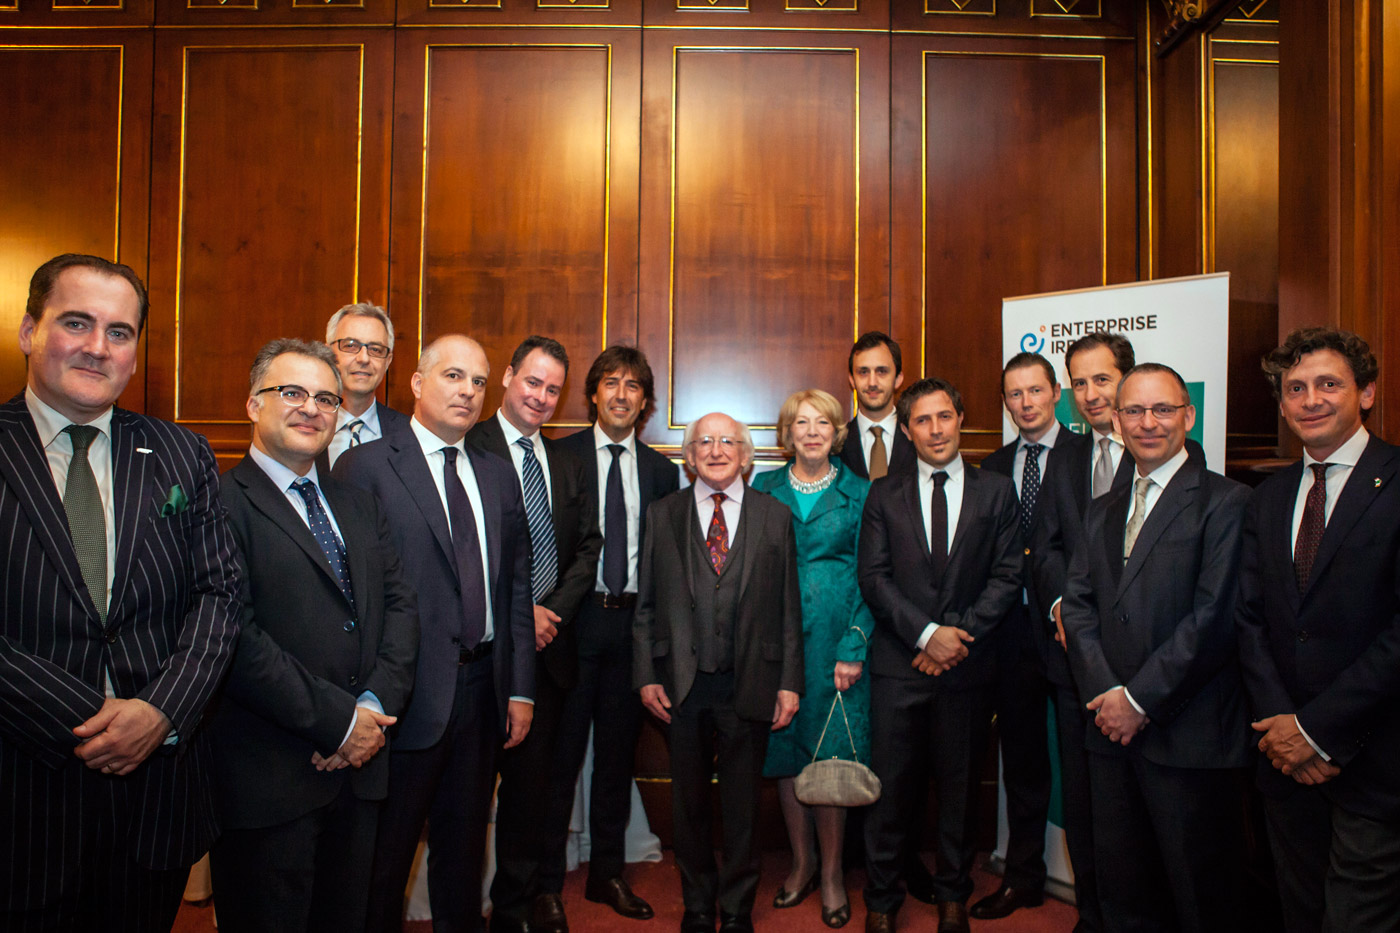 President and Mrs Higgins with Enterprise Ireland client companies and guests